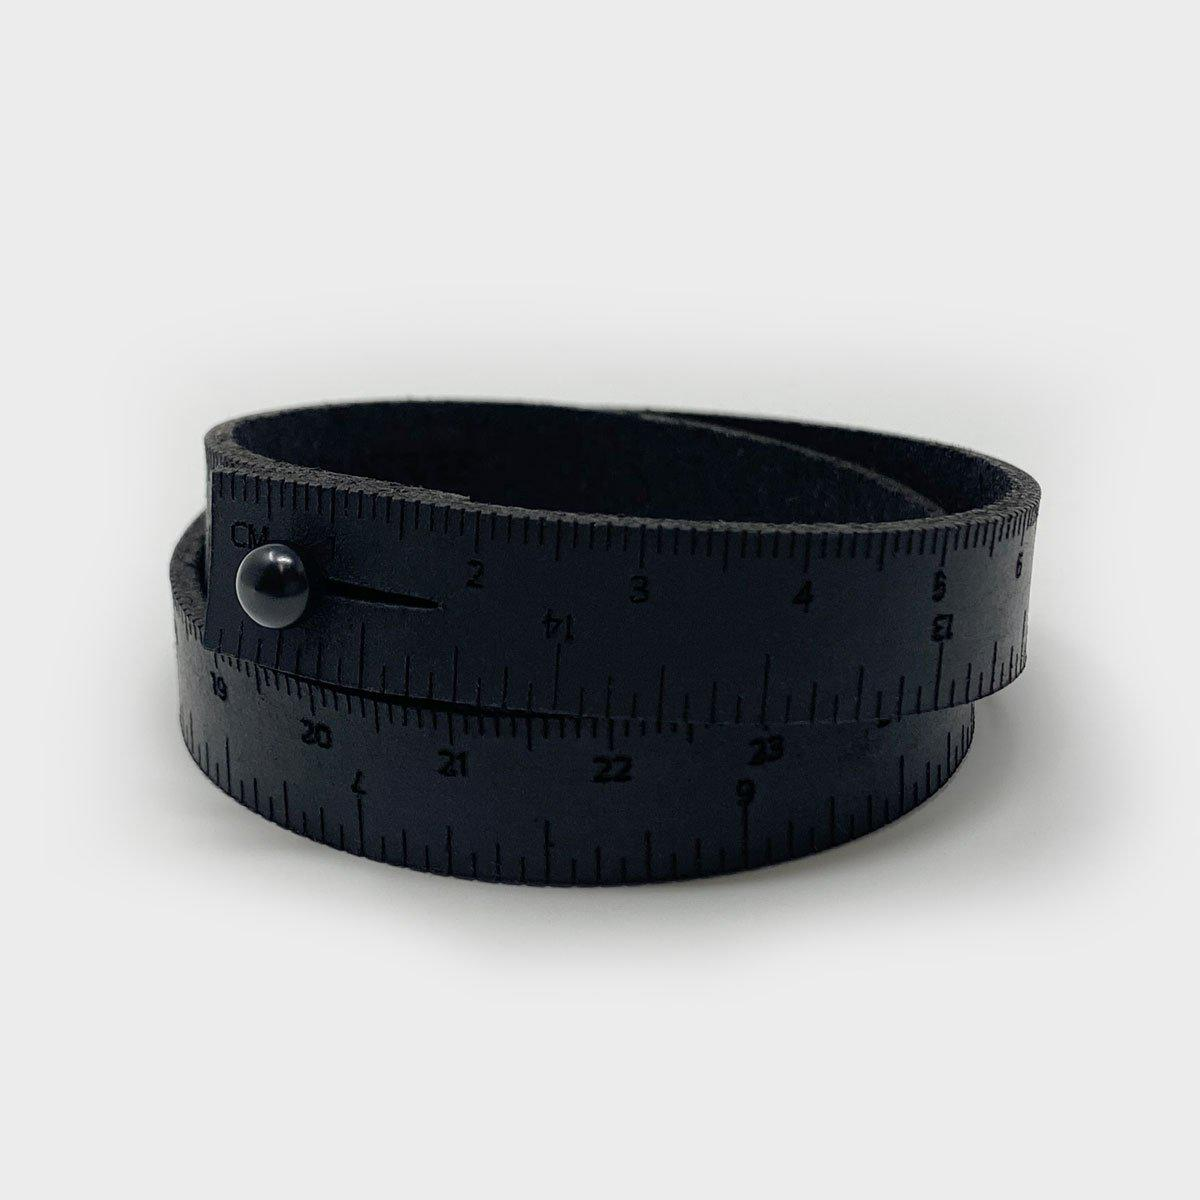 Crossover Industries - Wrist Ruler Blackout, Limited Edition - - gatherhereonline.com